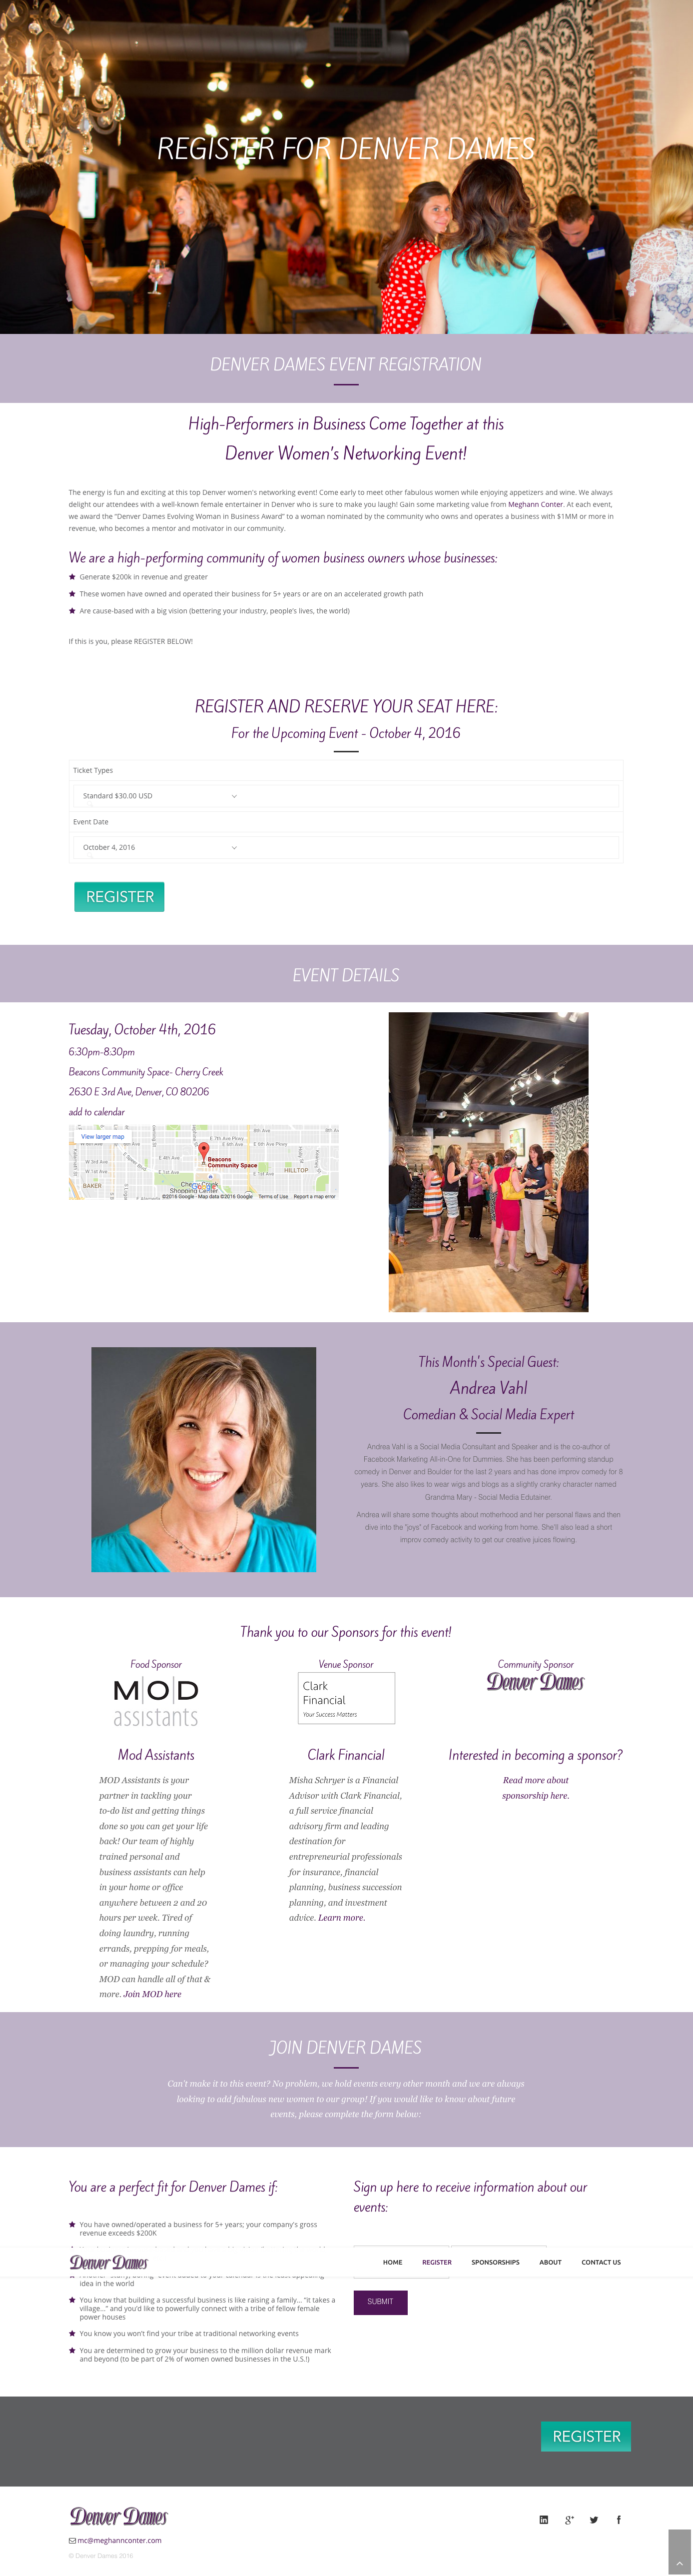 Website design- women's networking